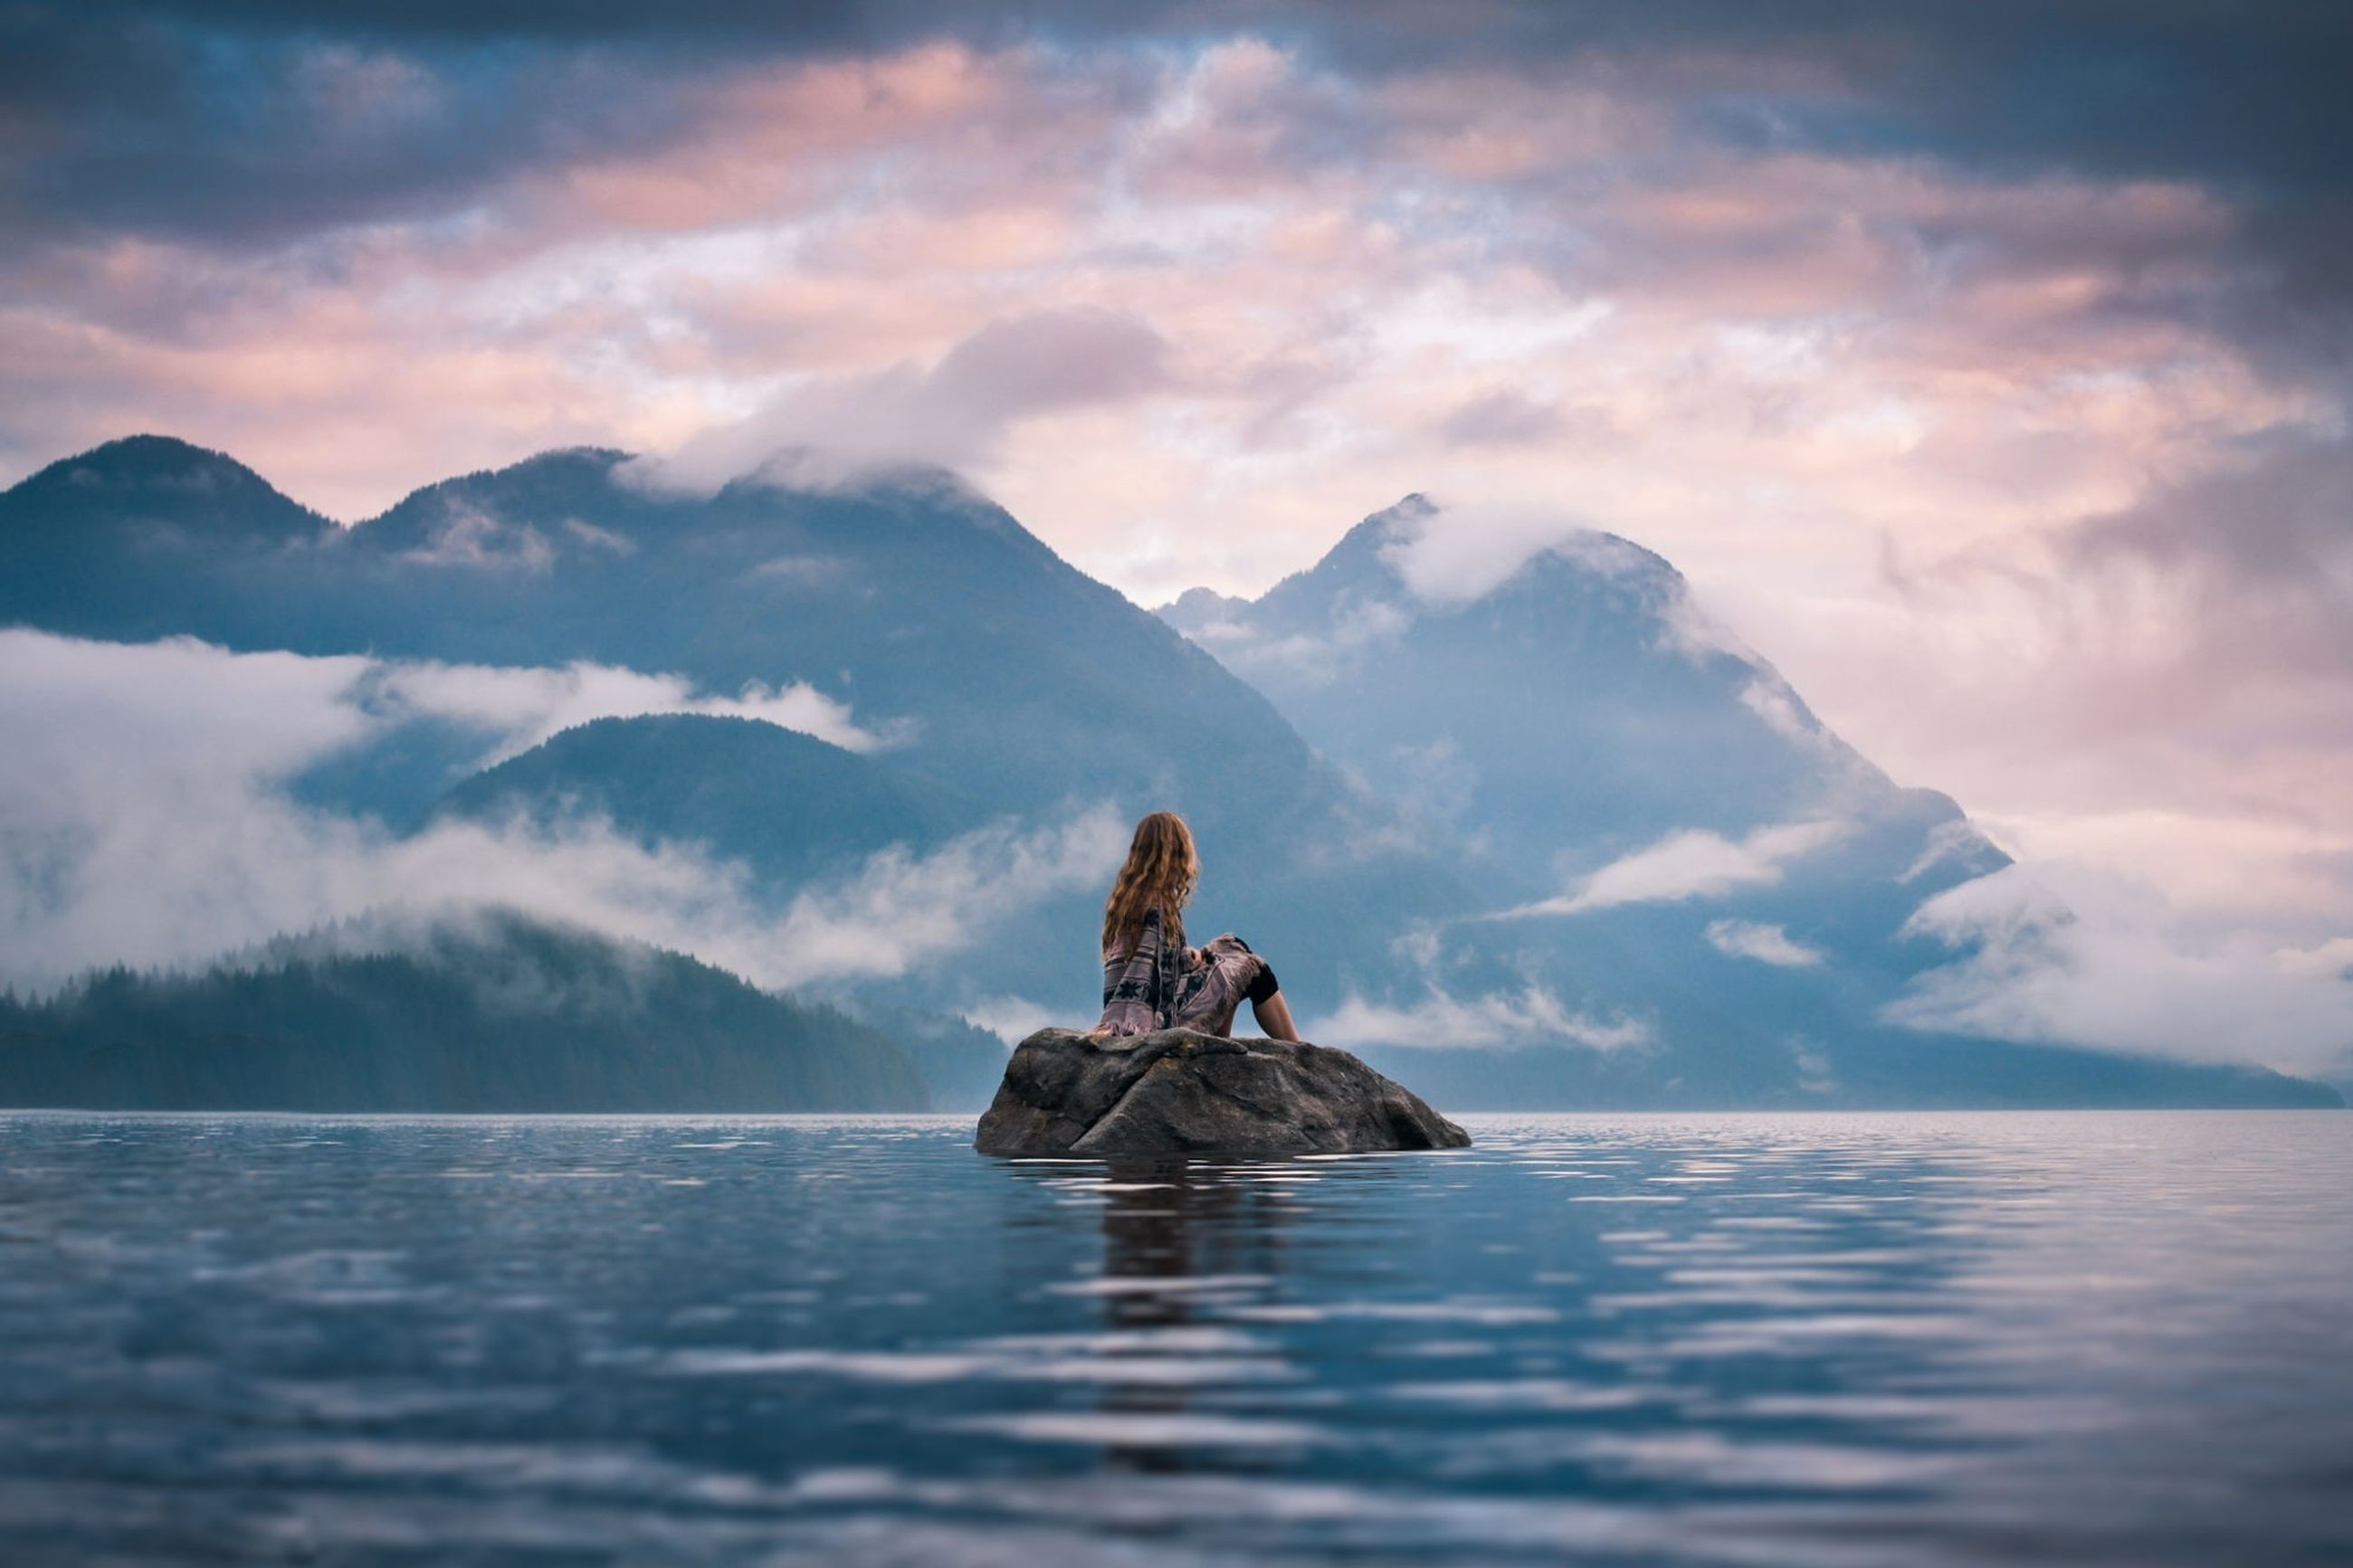 cloud - sky, water, sky, mountain, scenics - nature, beauty in nature, waterfront, tranquil scene, tranquility, real people, sea, nautical vessel, nature, transportation, mountain range, people, mode of transportation, outdoors